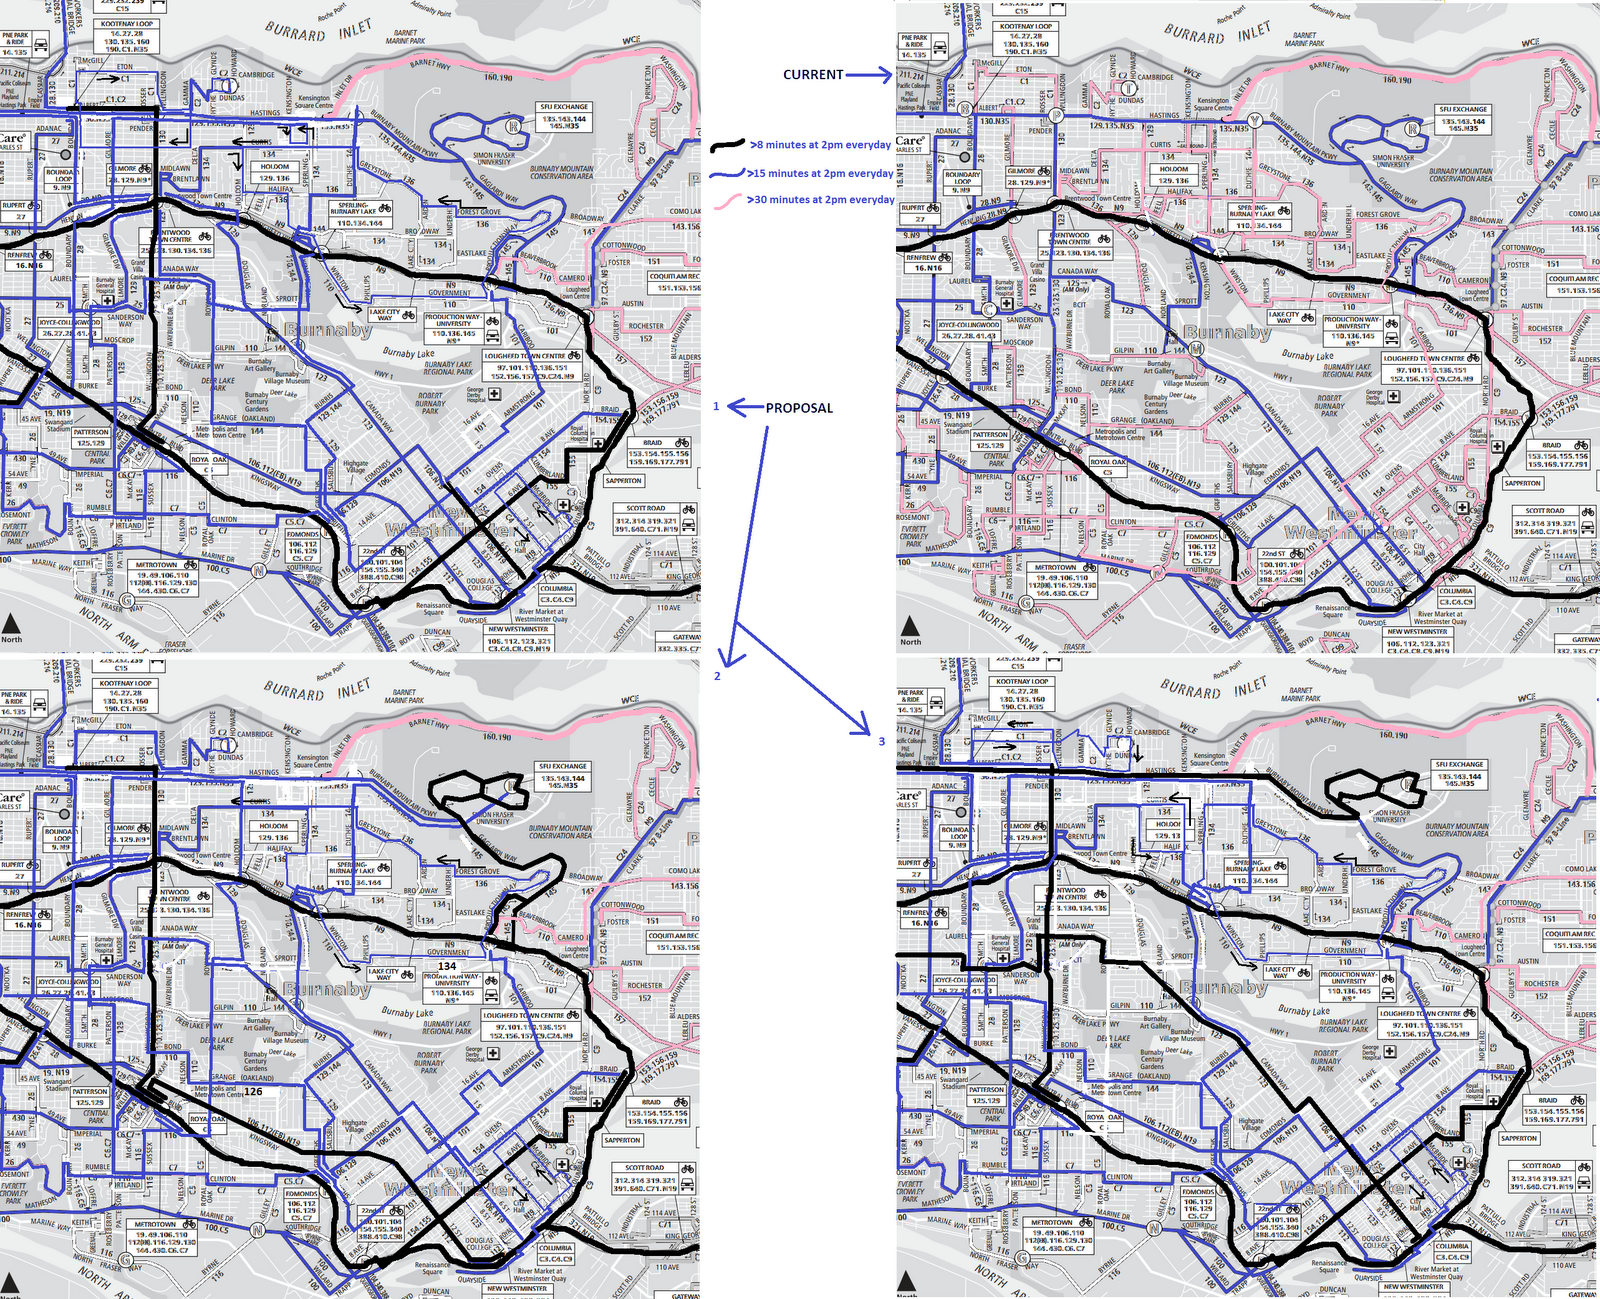 Kyle (van257)'s Burnaby bus network proposal. [CLICK IMAGE] for full size. The original network is on the top right, and there are three proposals